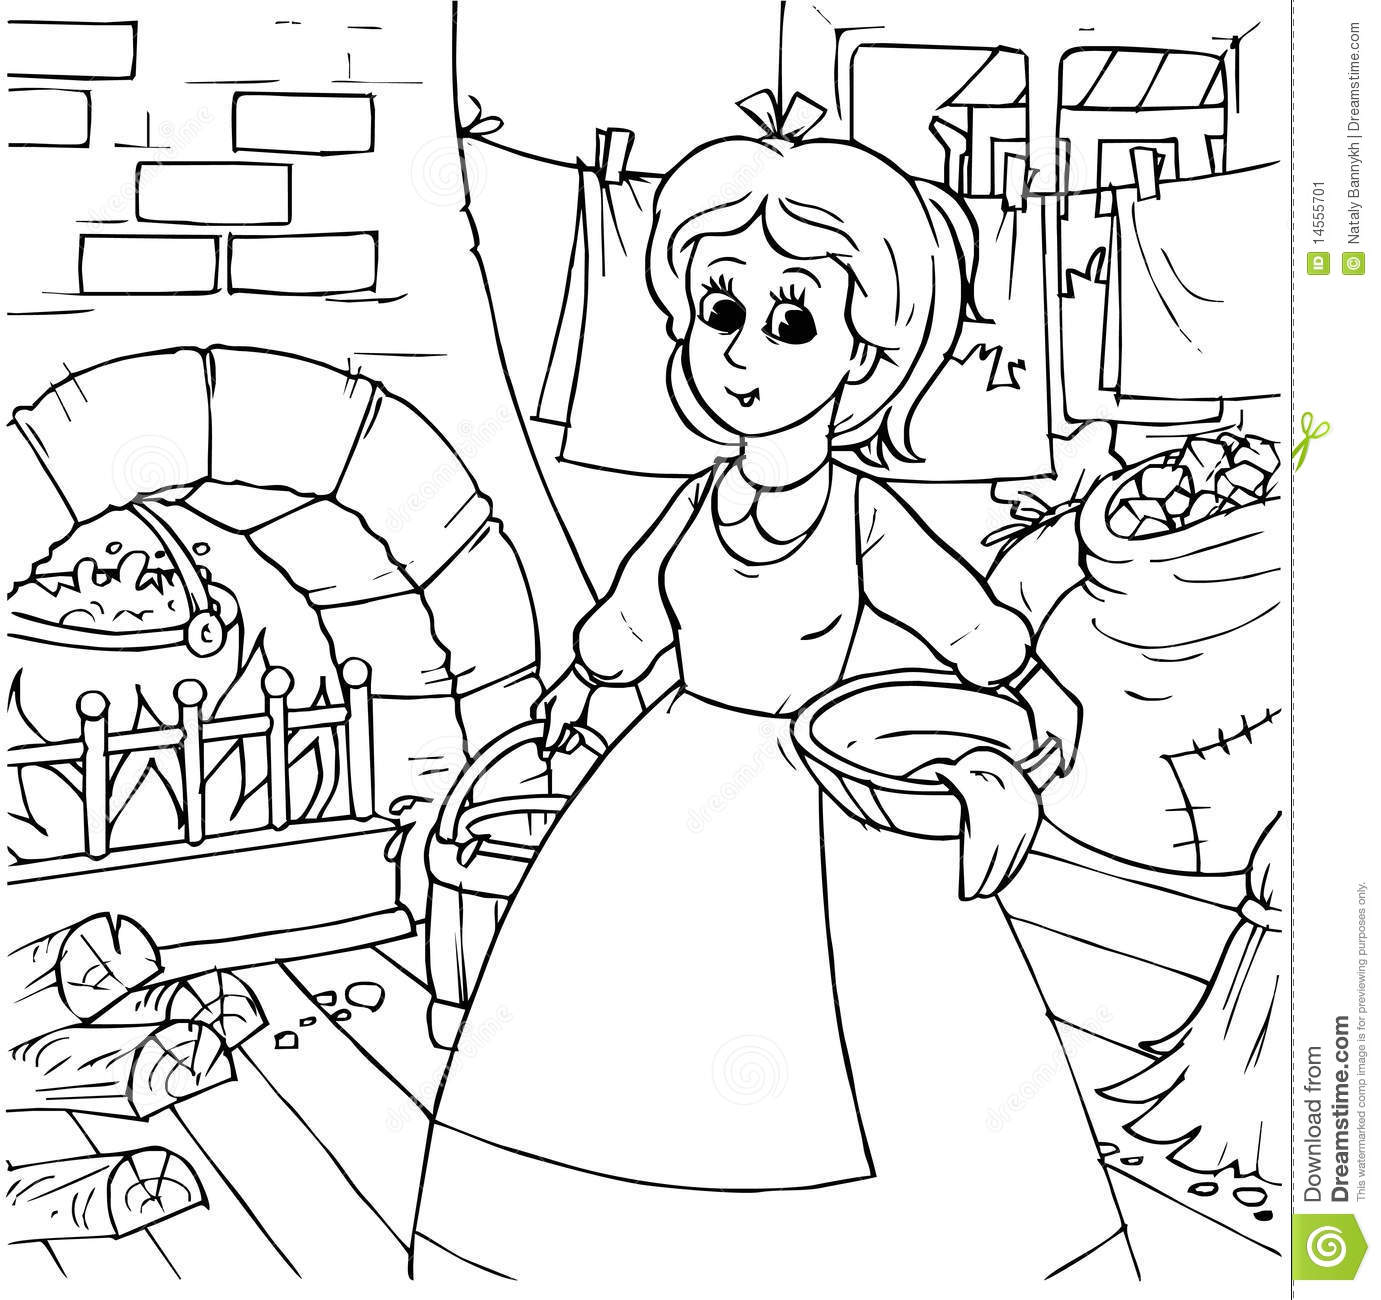 Images for gt cinderella princess clipart black and white - Disney Black And White Clip Art Joy Studio Design Wallpaper Gallery Gallery For Gt